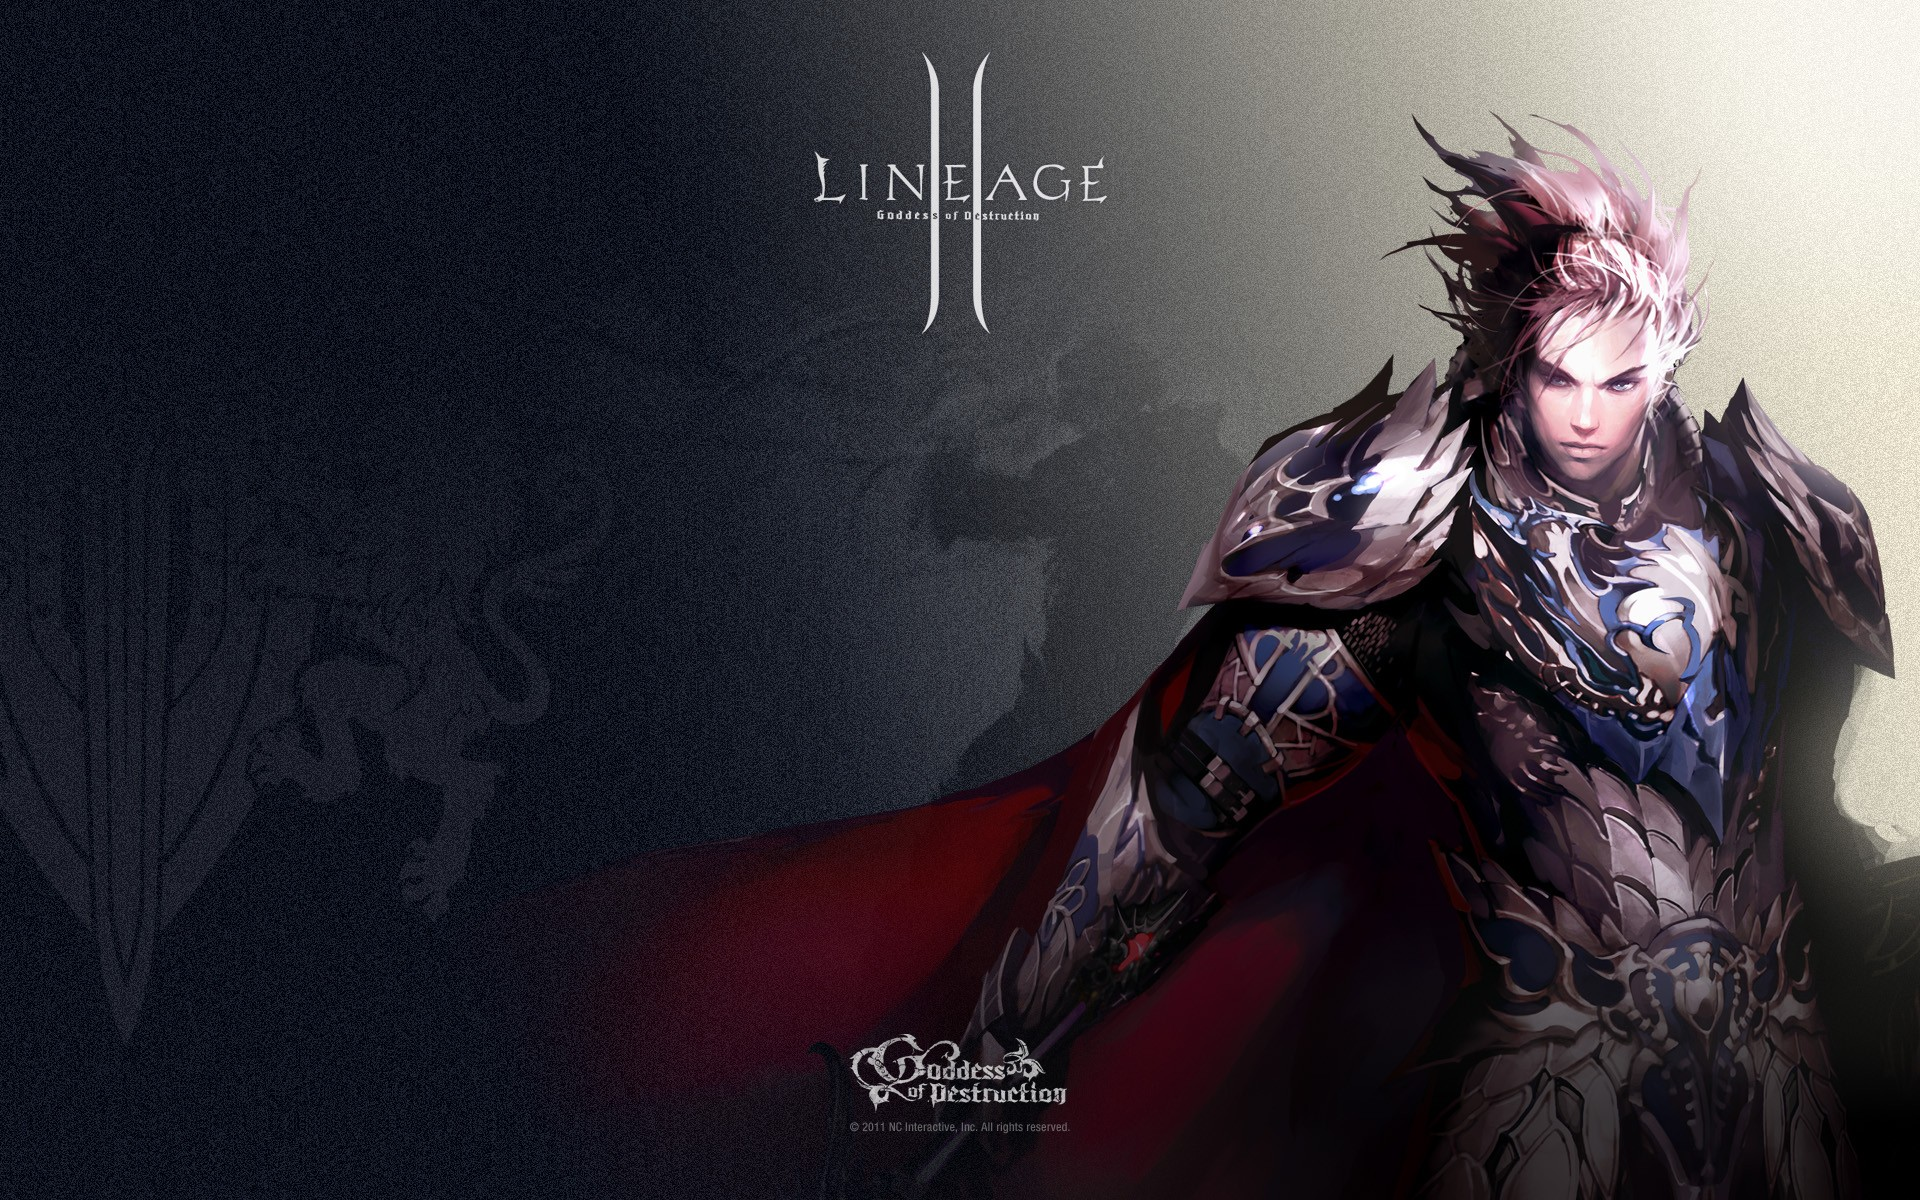 Kamael with a crossbow in the new part of Lineage 2: Goddess of destruction